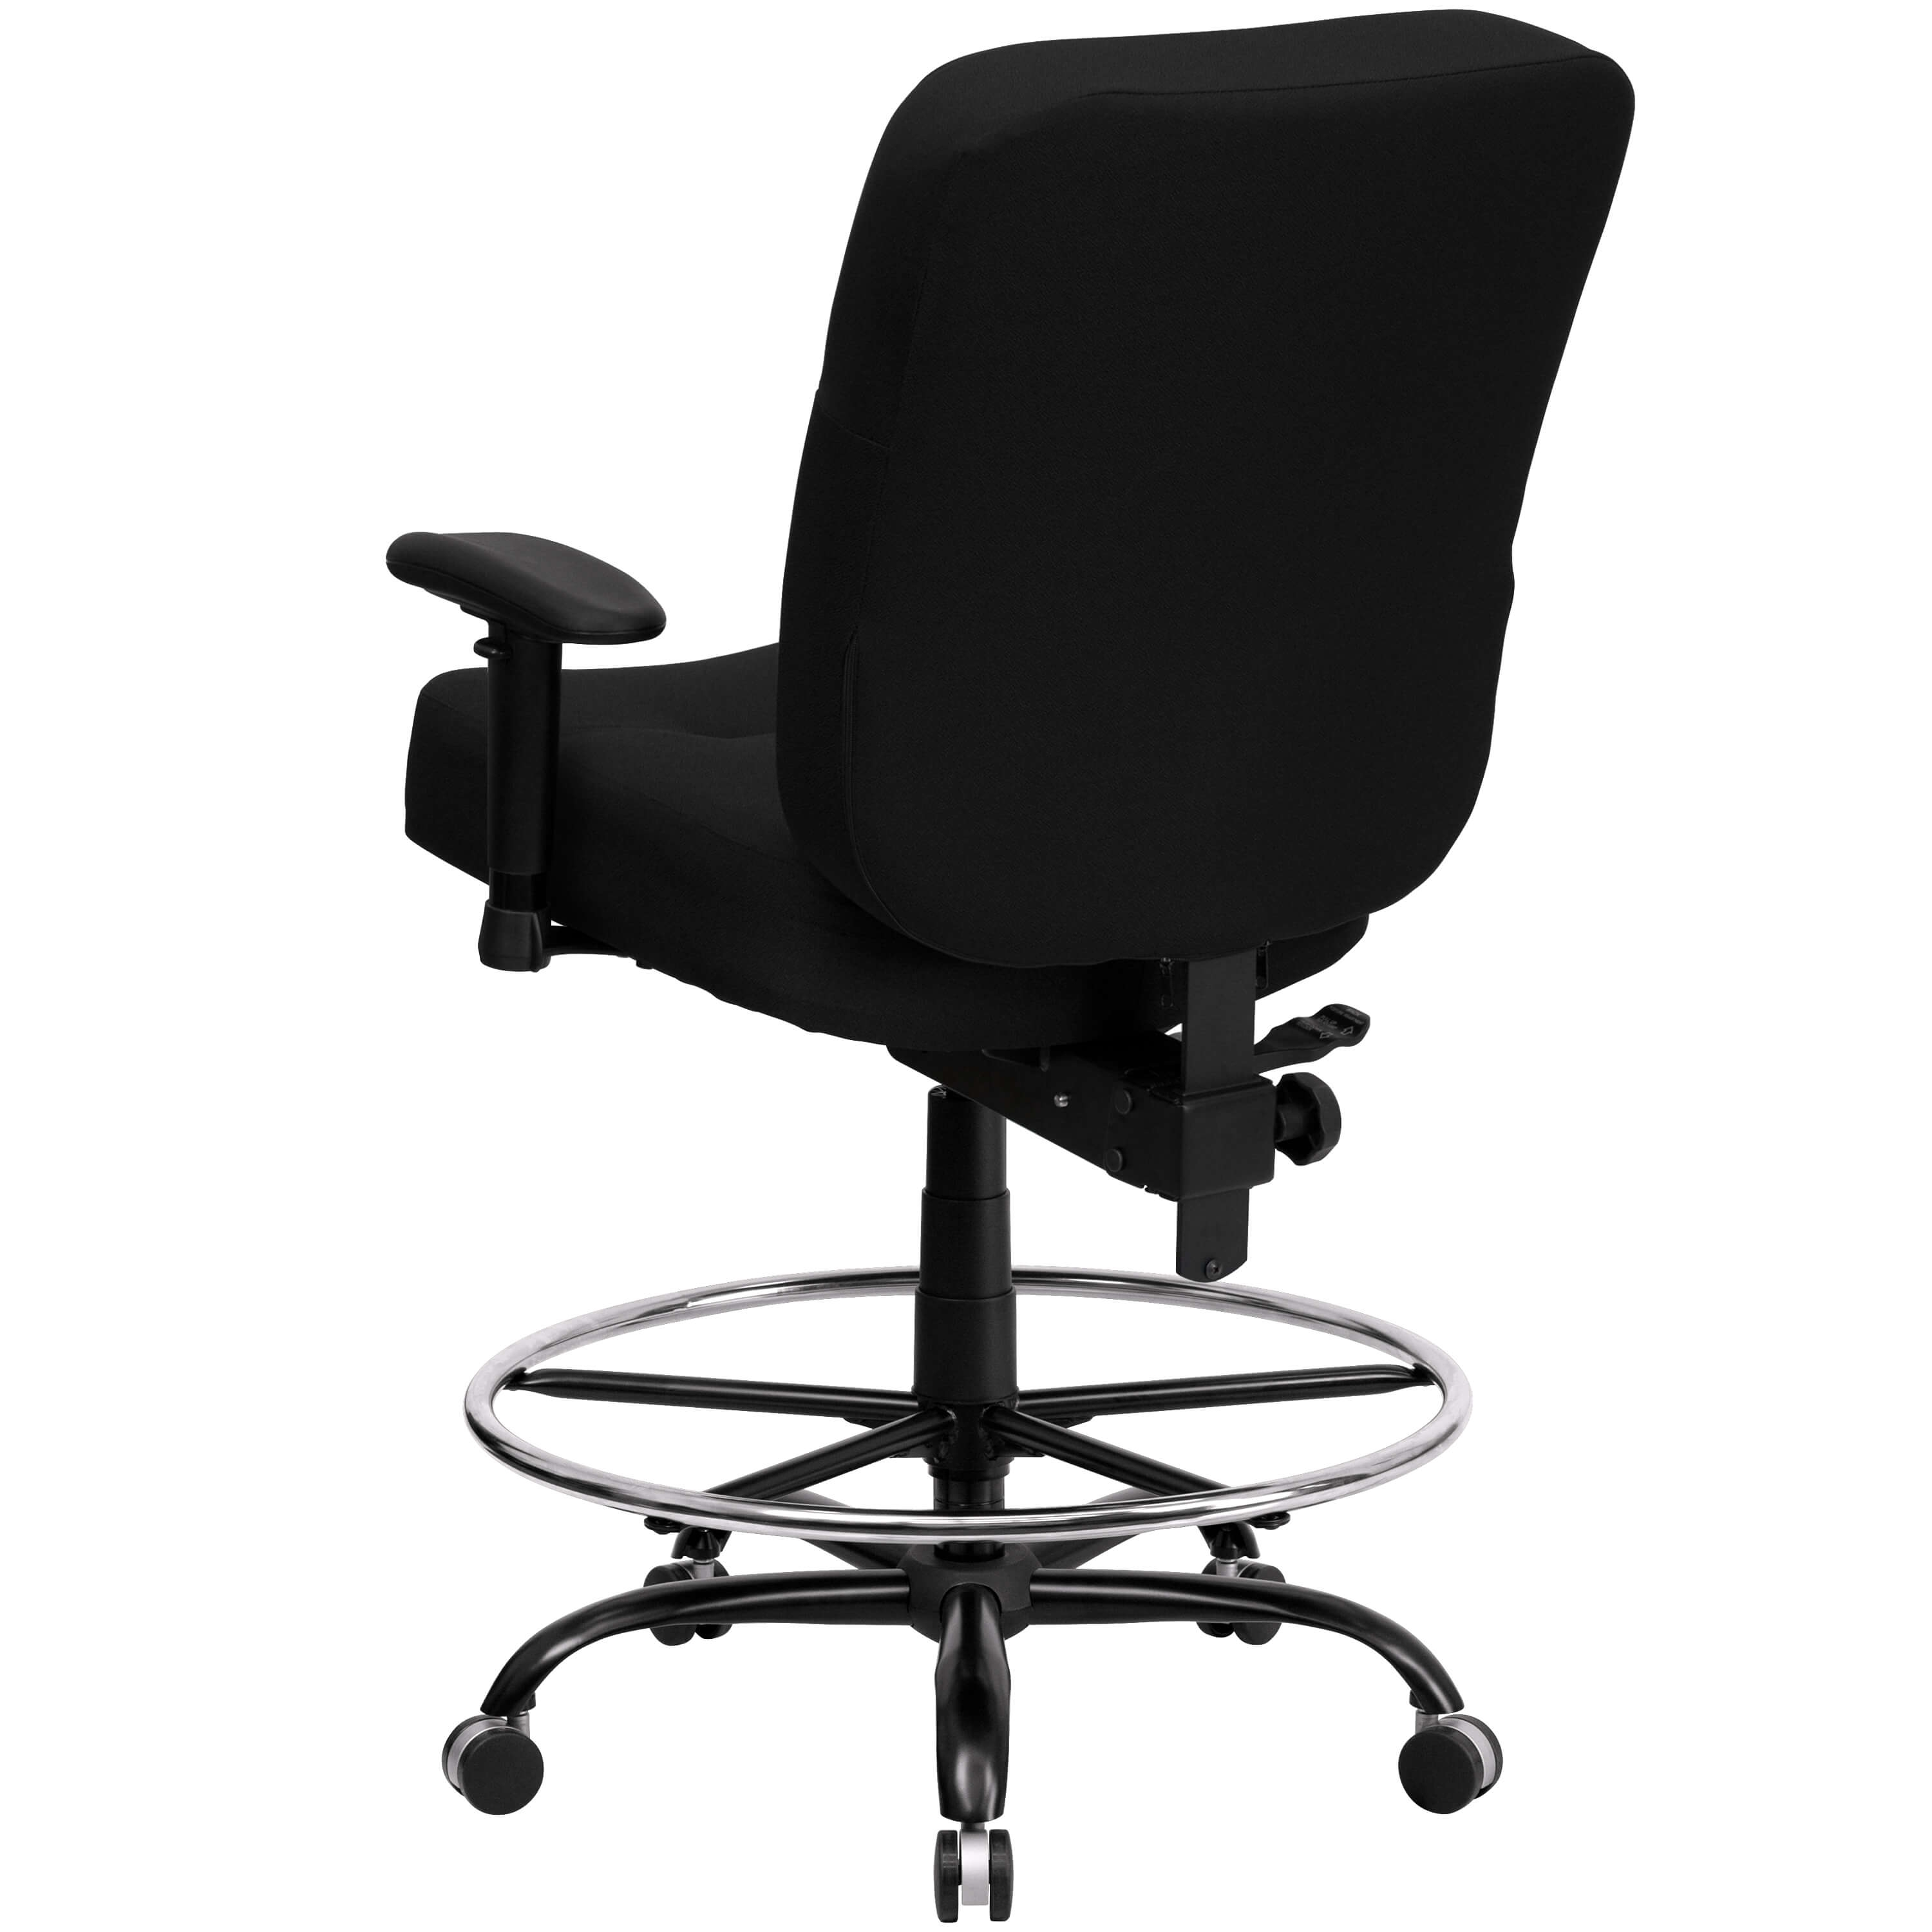 Large size office chairs back view